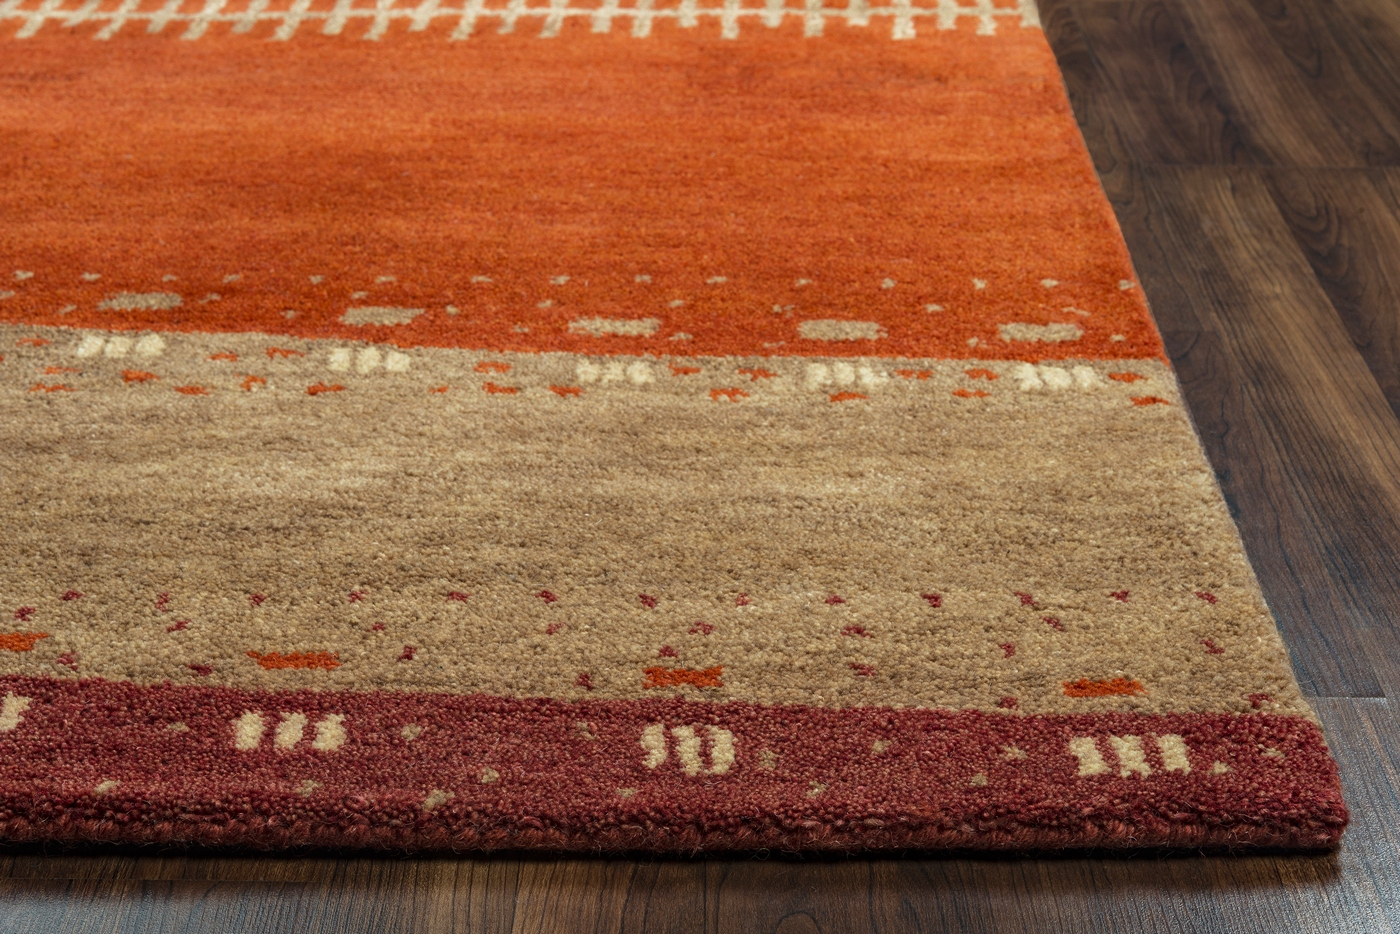 Mojave Abstract Patchwork Wool Area Rug In Red Tan Orange